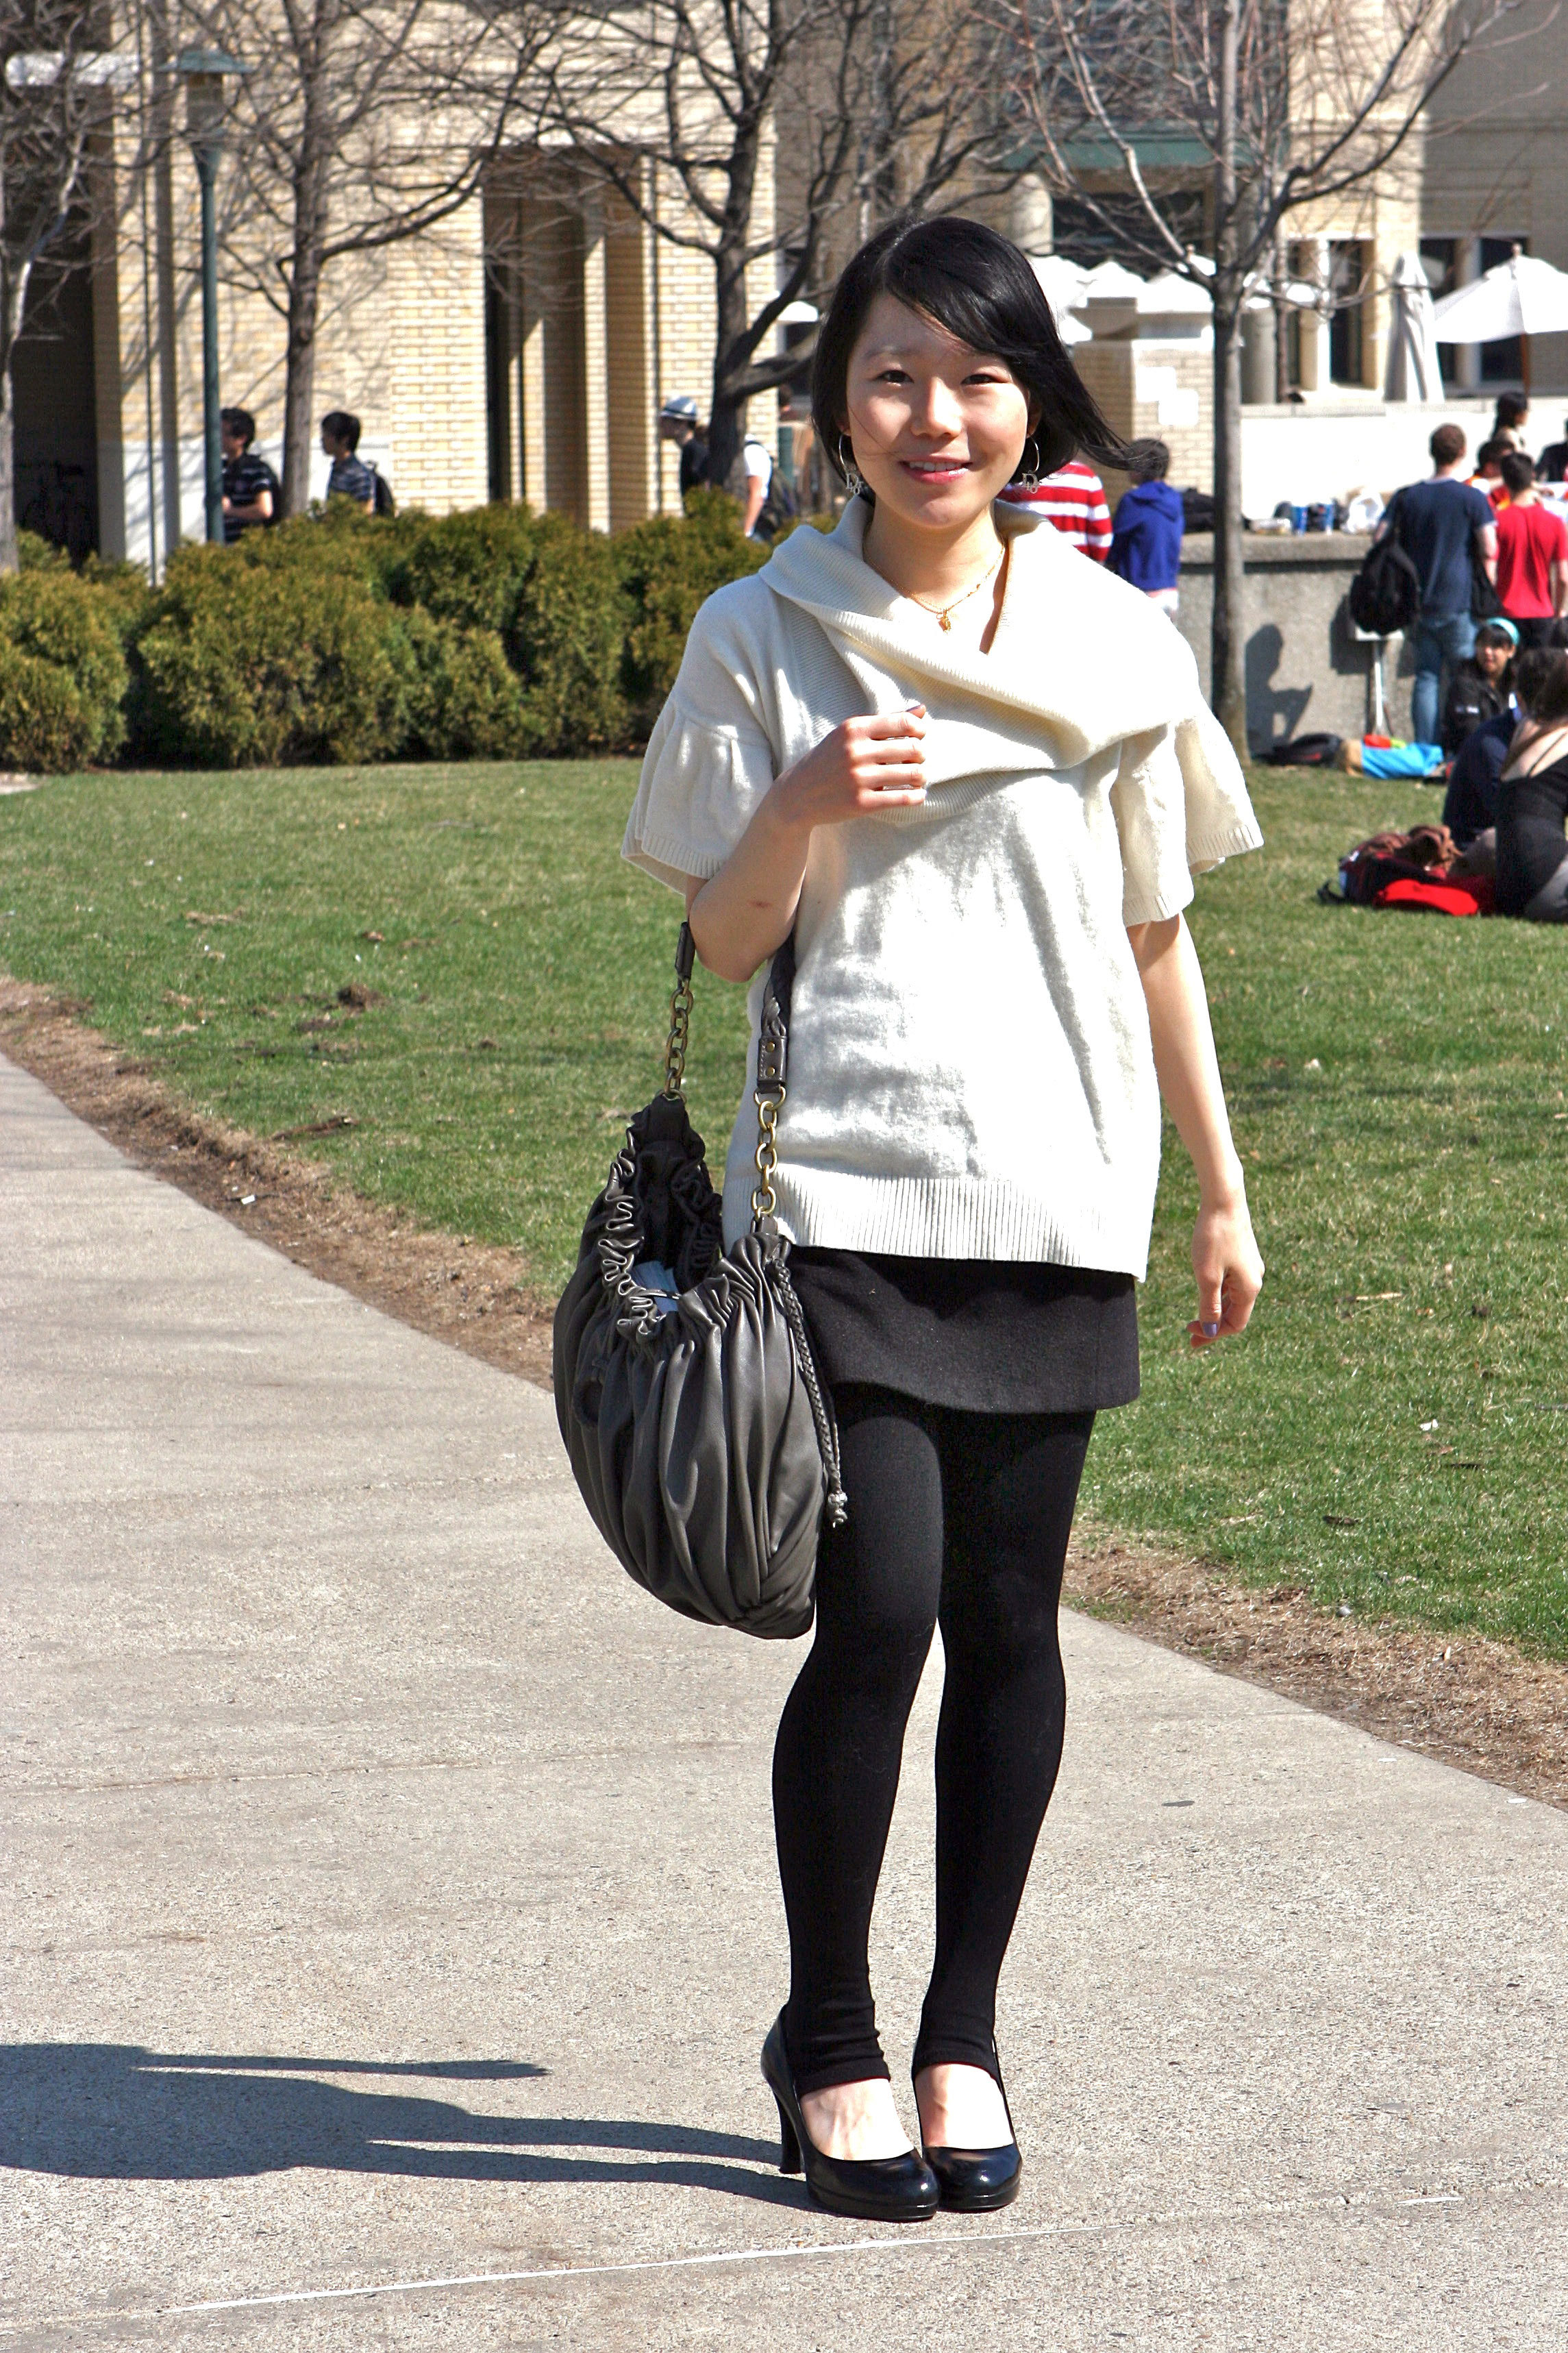 Kwak heralds the arrival of spring with a light and slimming outfit. (credit: Courtesy of Eddie Wong)